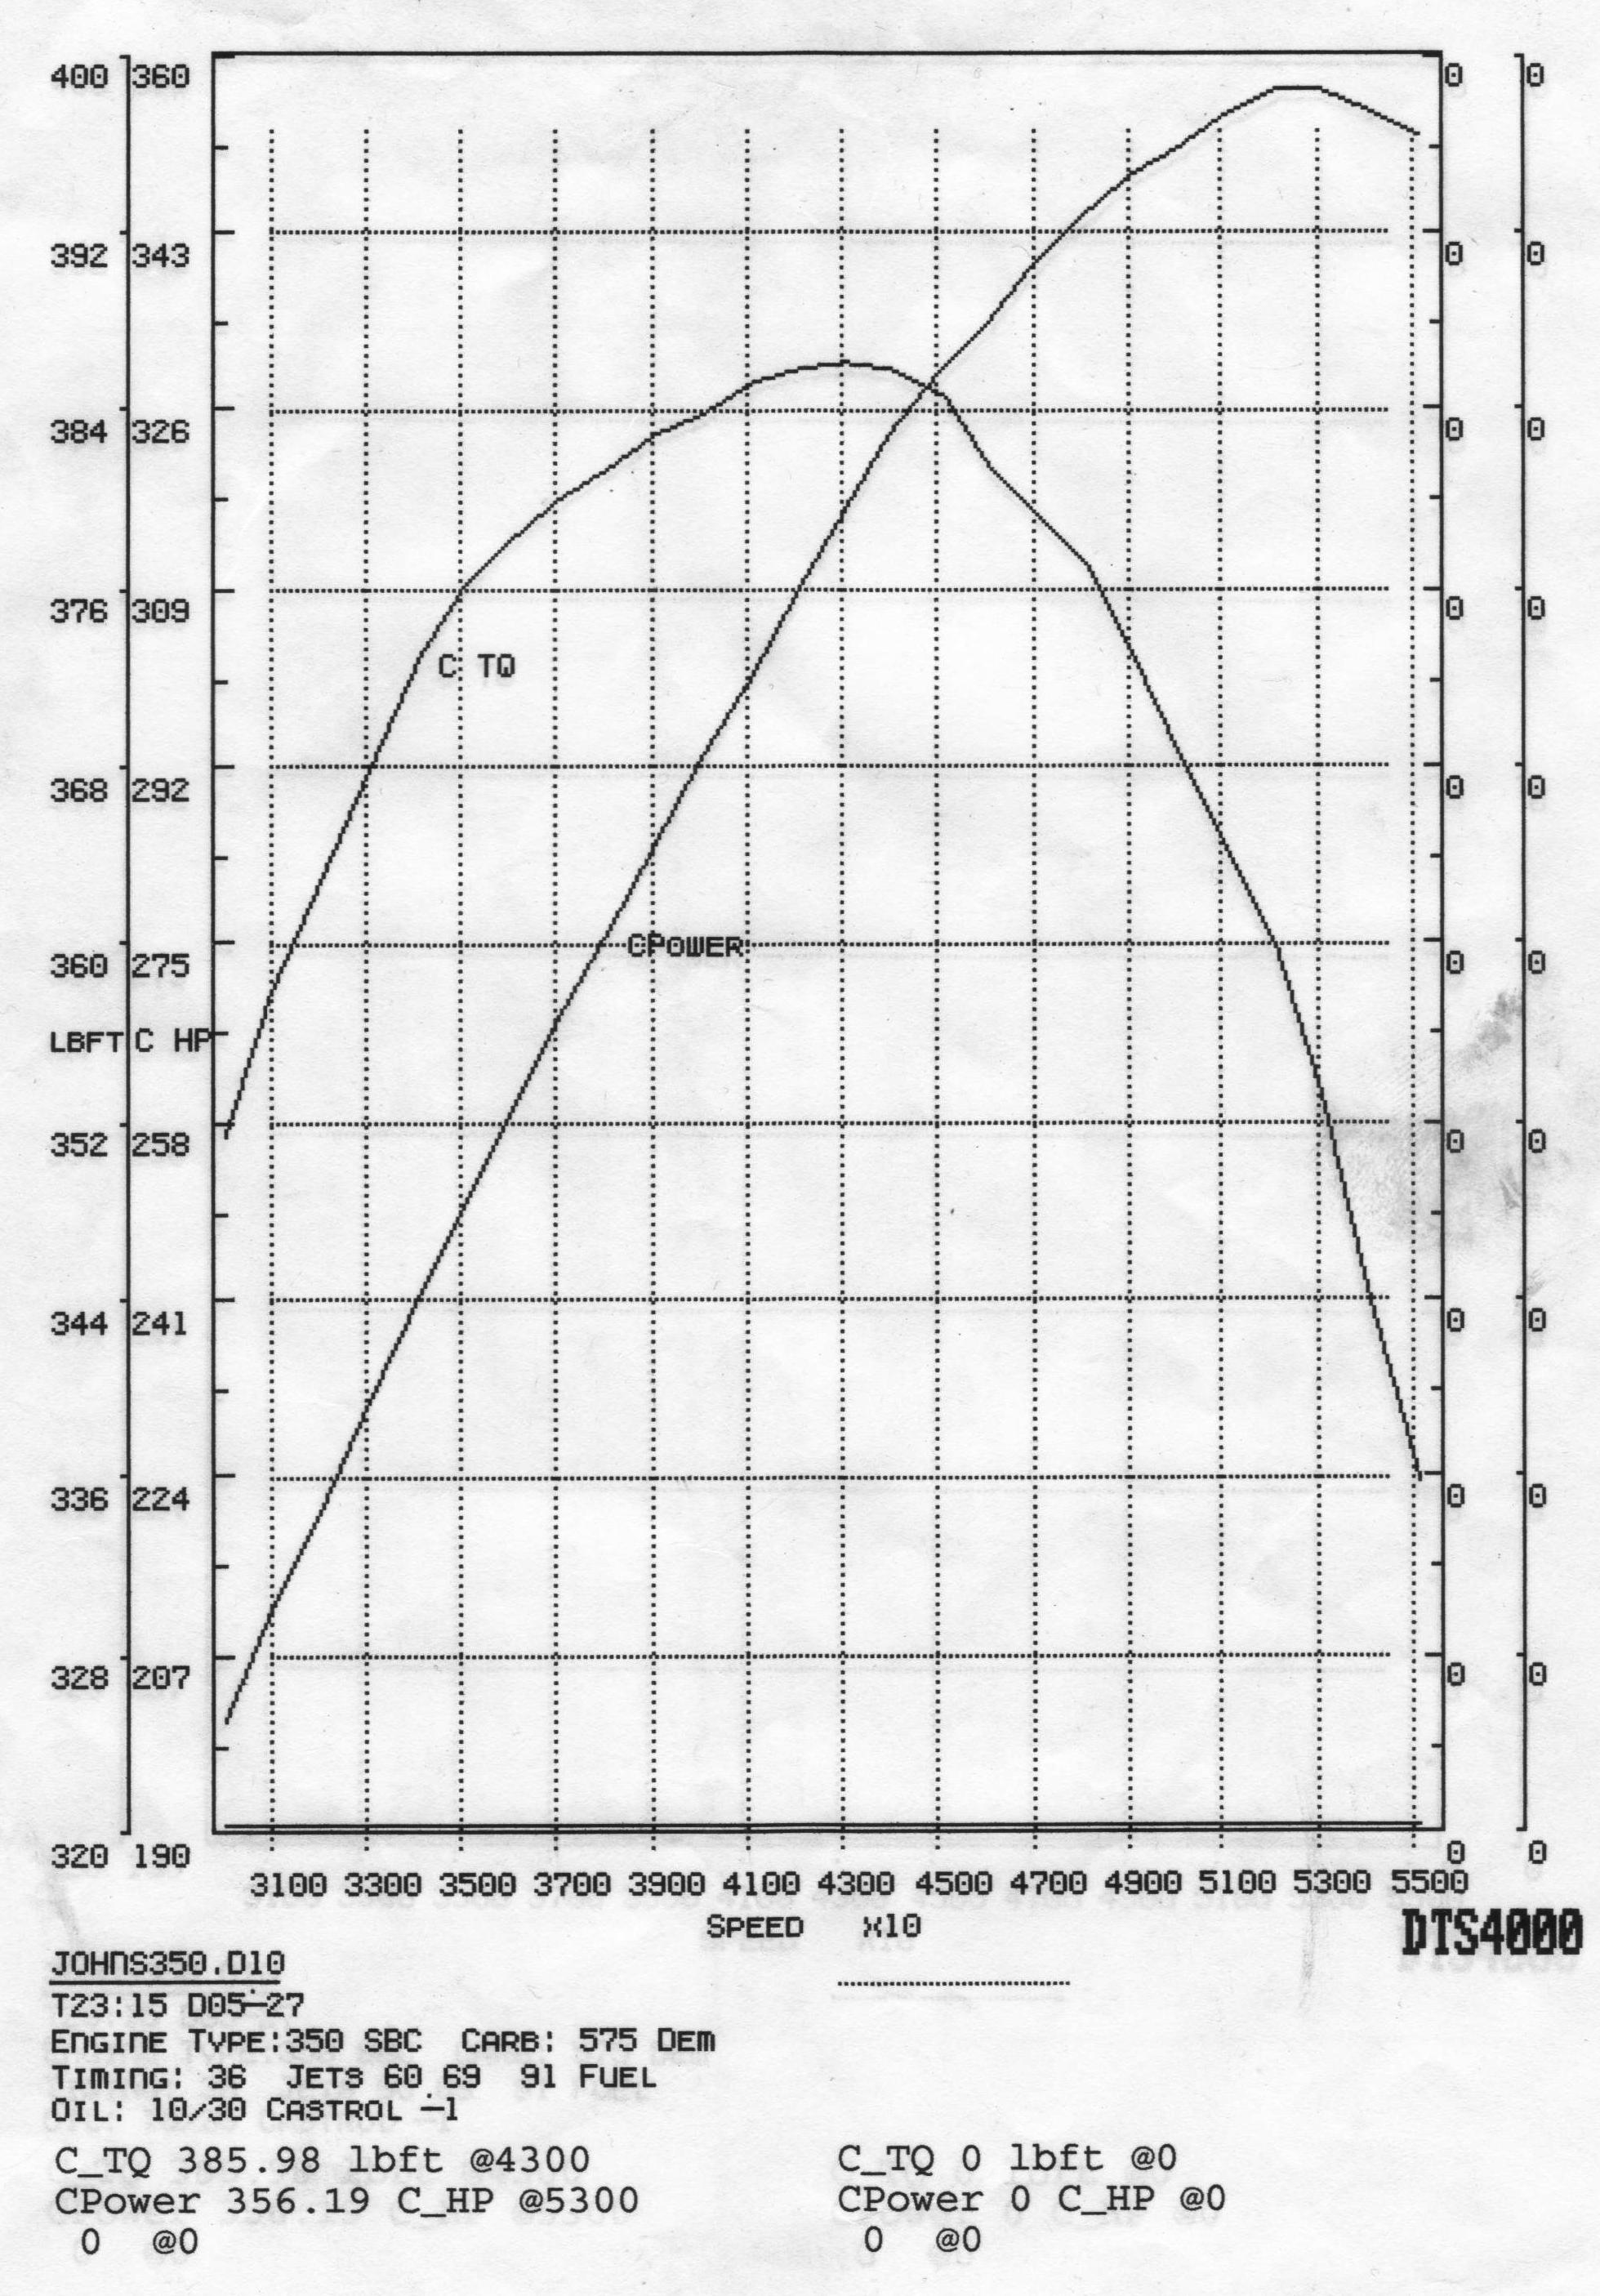 352 Ford Engine Torque Diagram 3.8 Liter Ford Engine